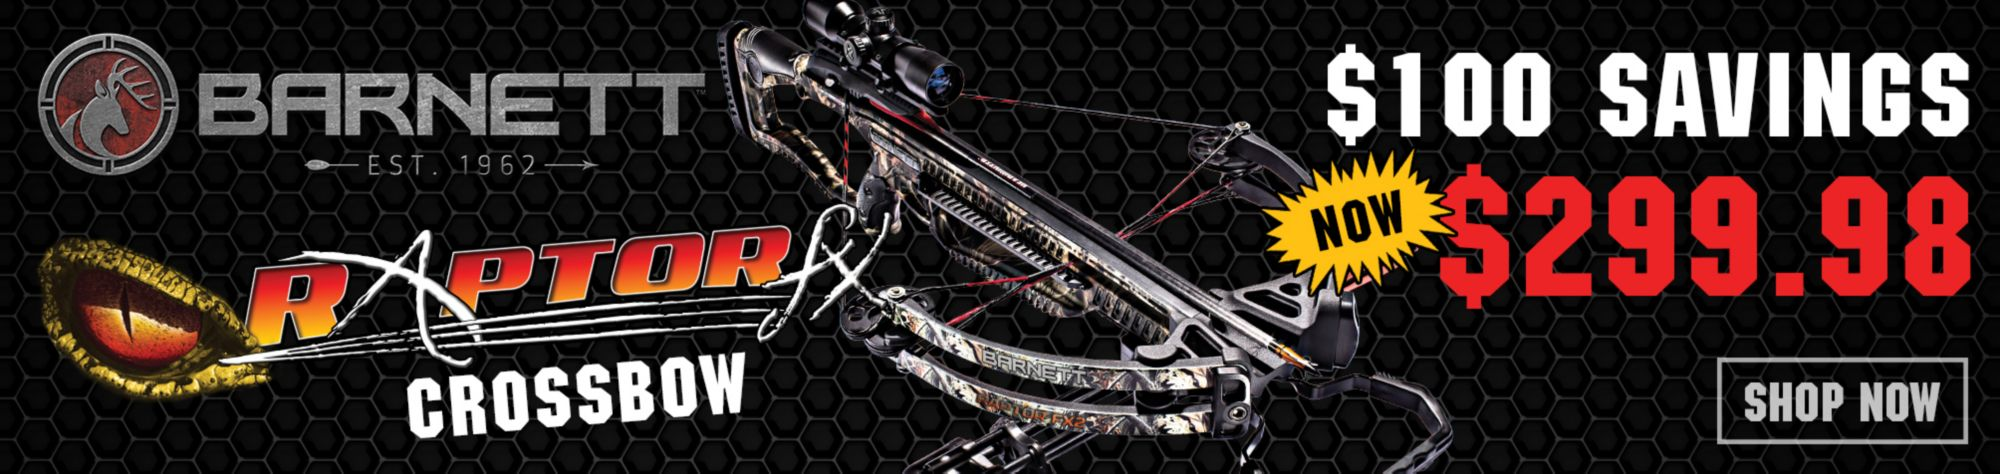 Shop Barnett Raptor Crossbows